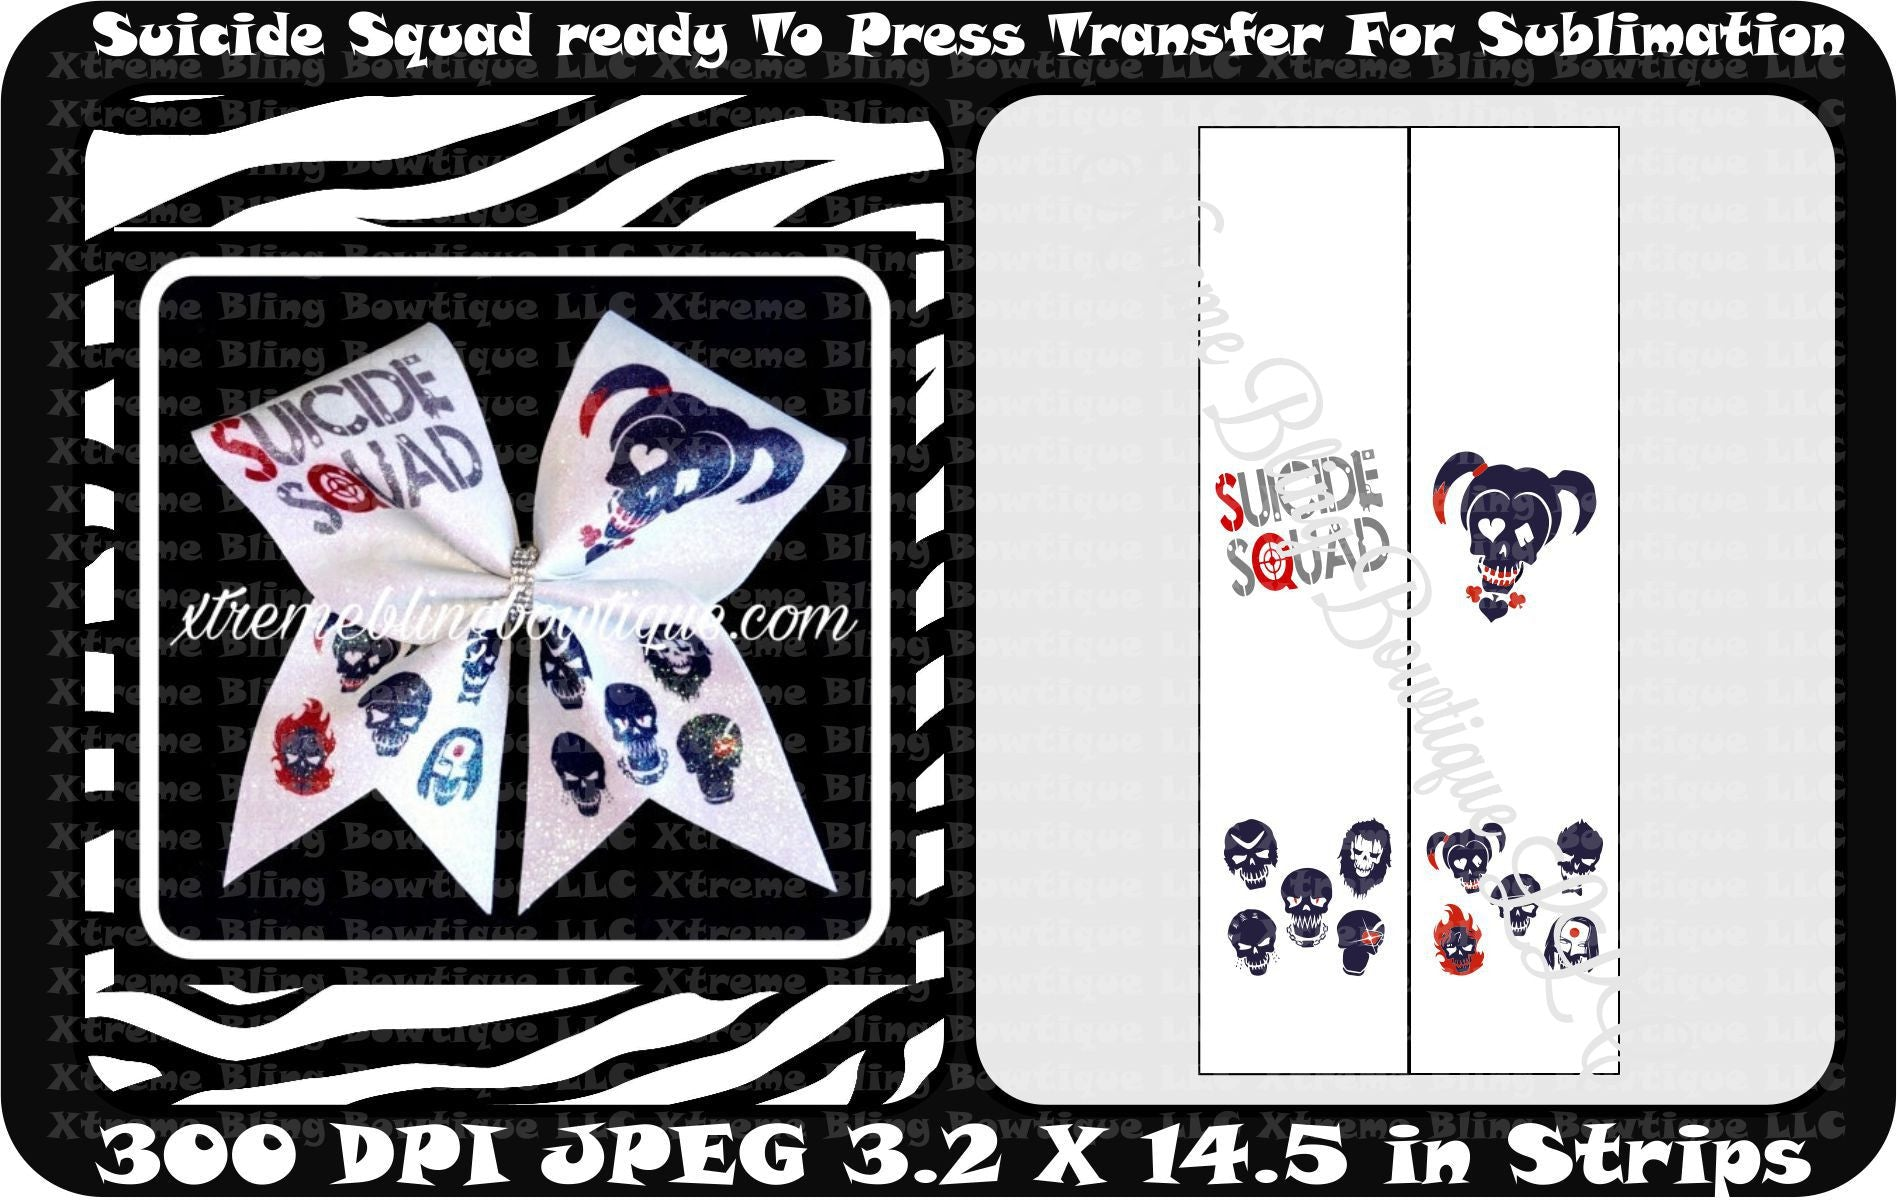 Suicide Squad 2 Ready to Press Sublimation Bow Strips